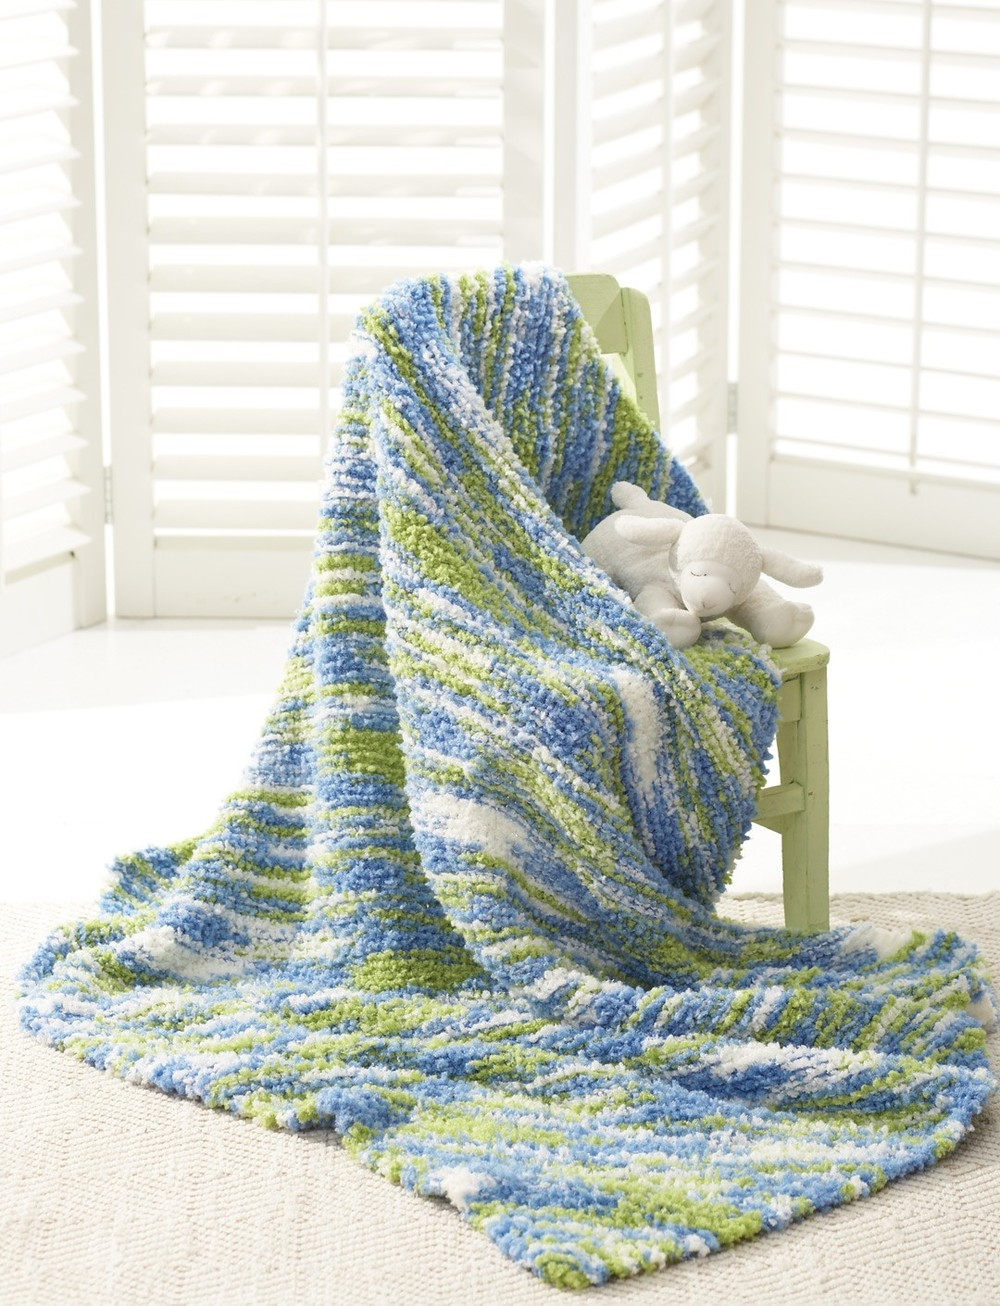 Bernat Baby Blanket Knitting Patterns : The Land and the Sea Baby Blanket AllFreeKnitting.com